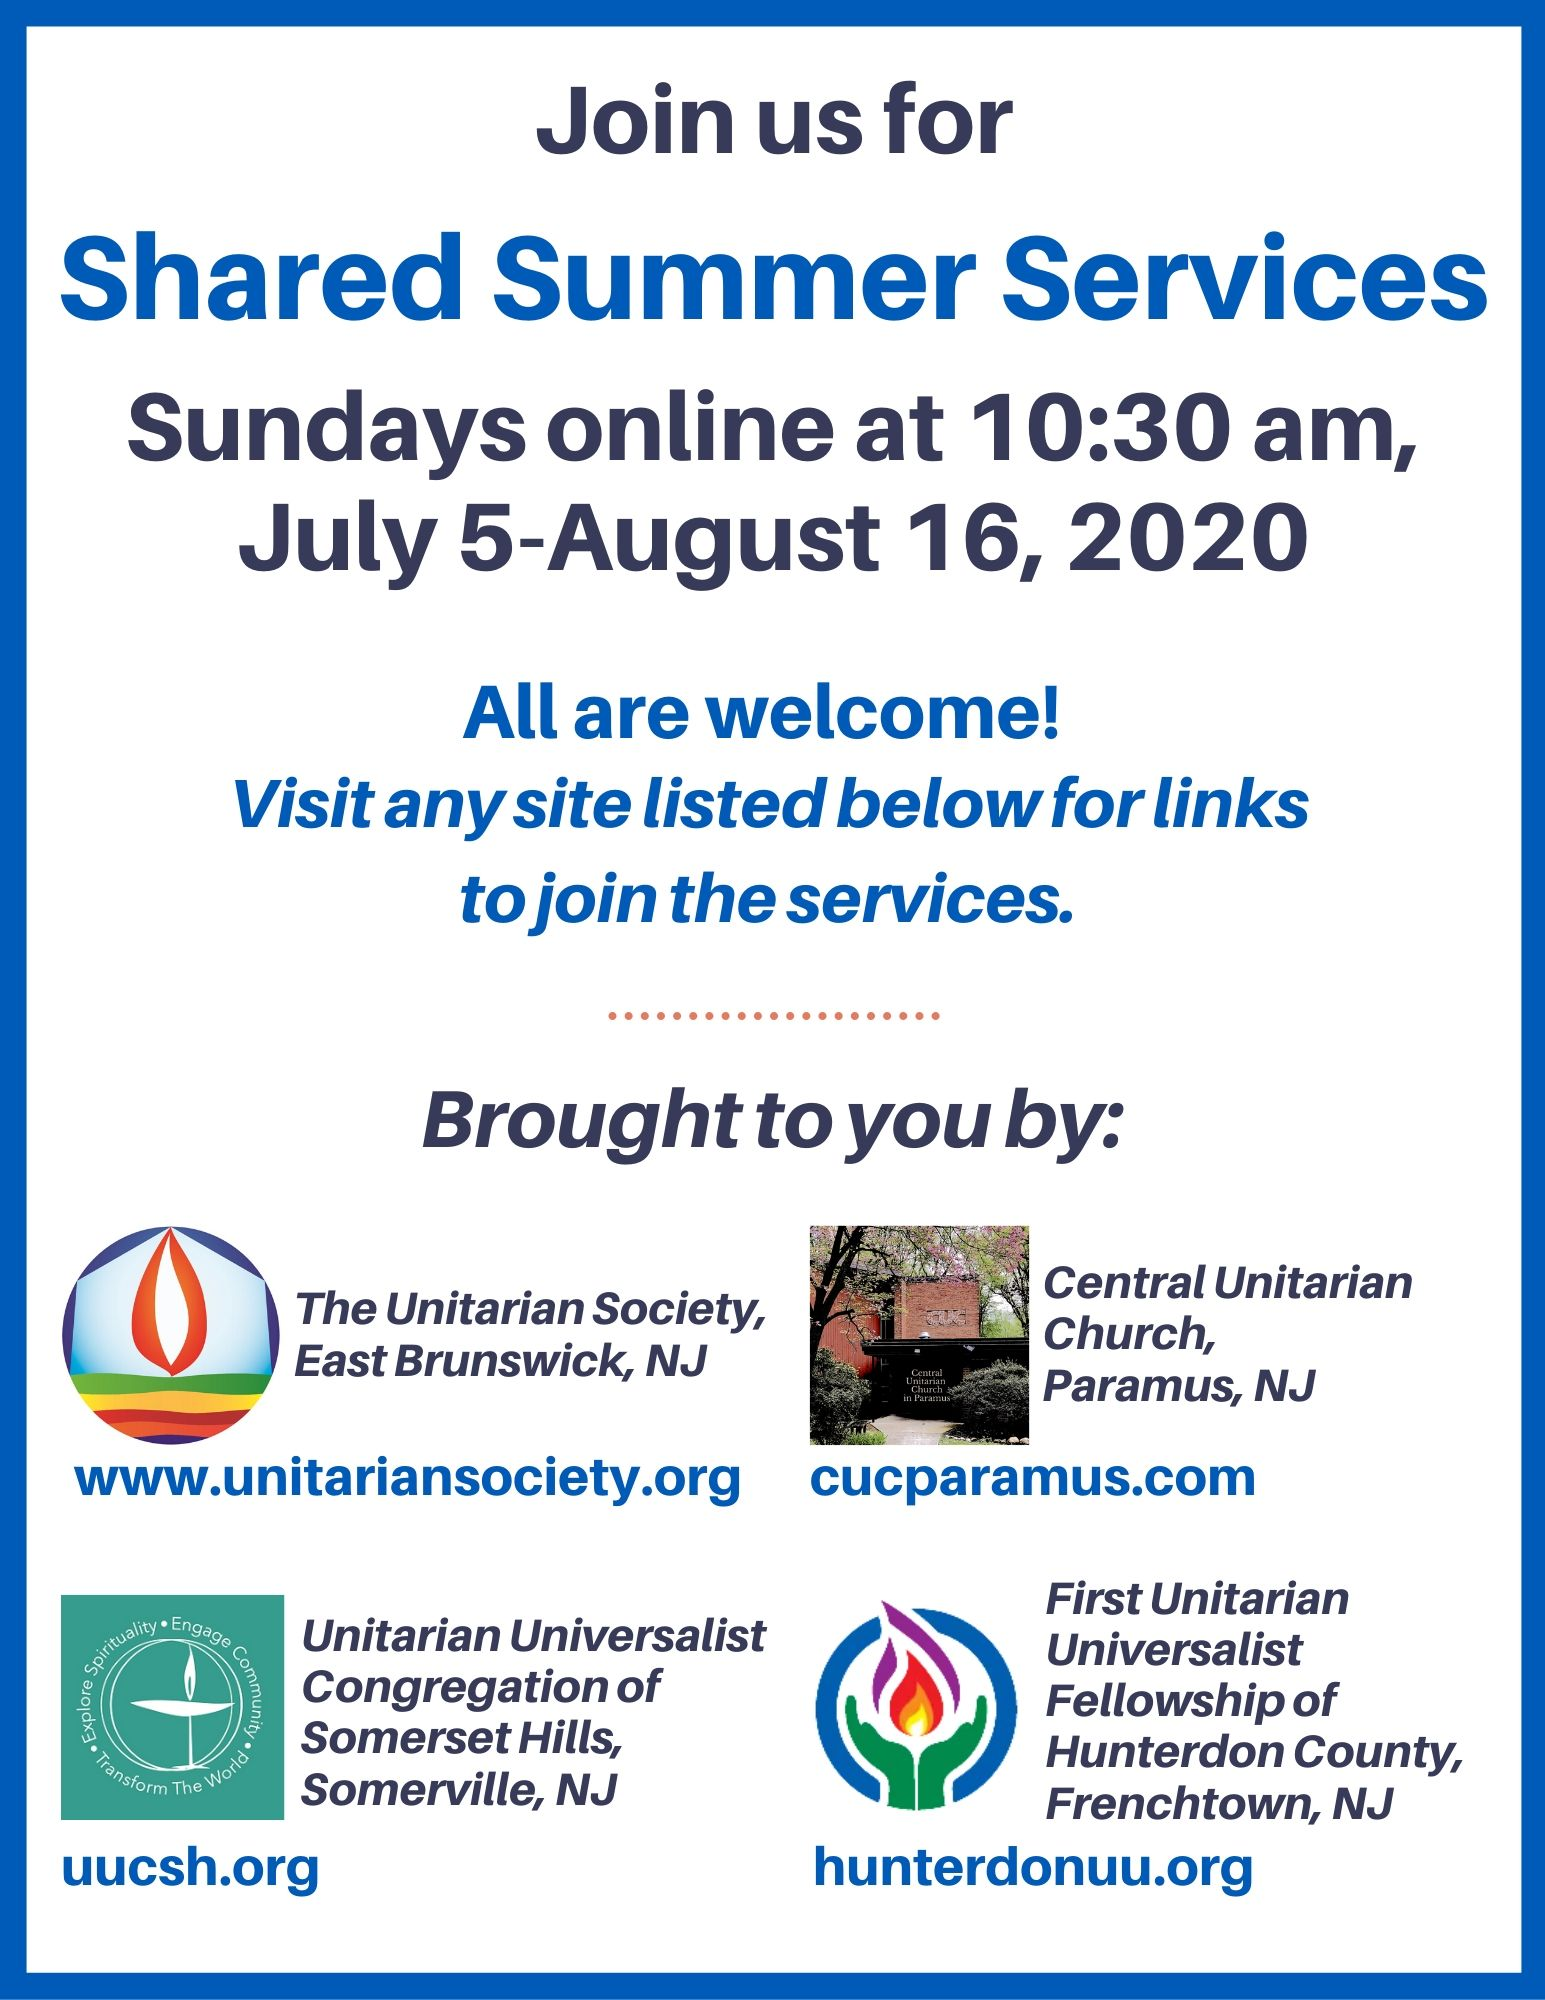 Shared Summer Services — Online Sundays @10:30 AM July 5th through August 16th